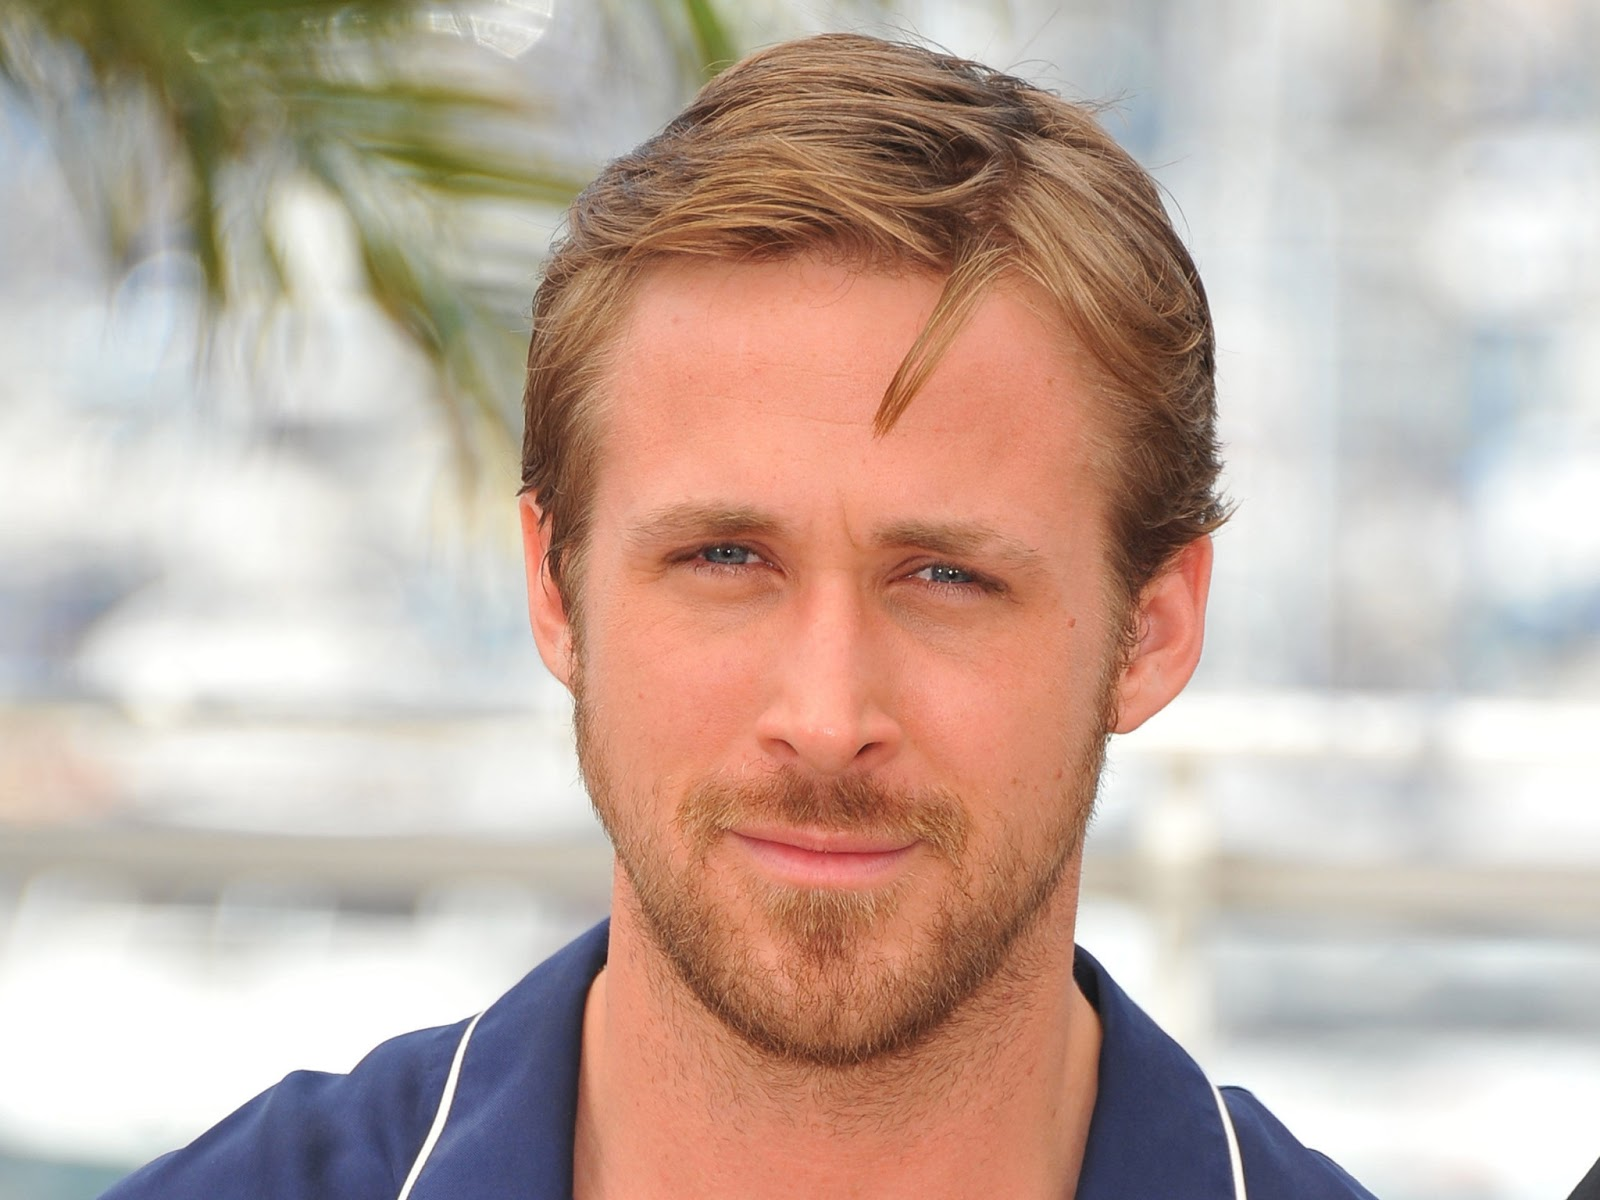 Handsome view of smilling face of Ryan Gosling